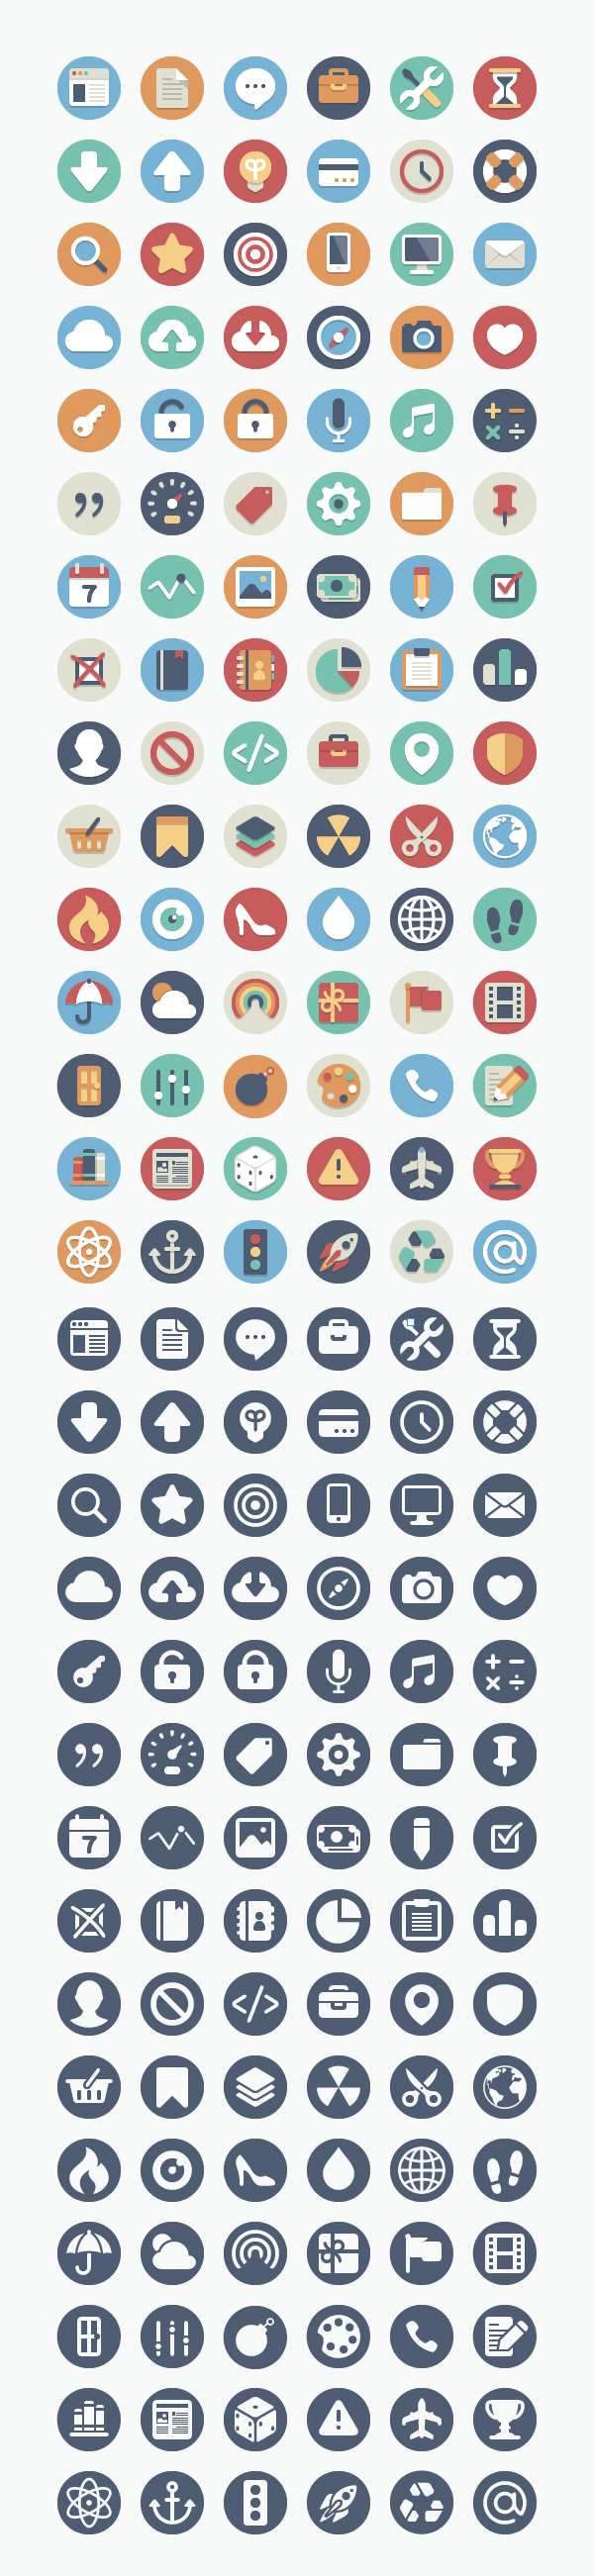 Sample of free icons you can download